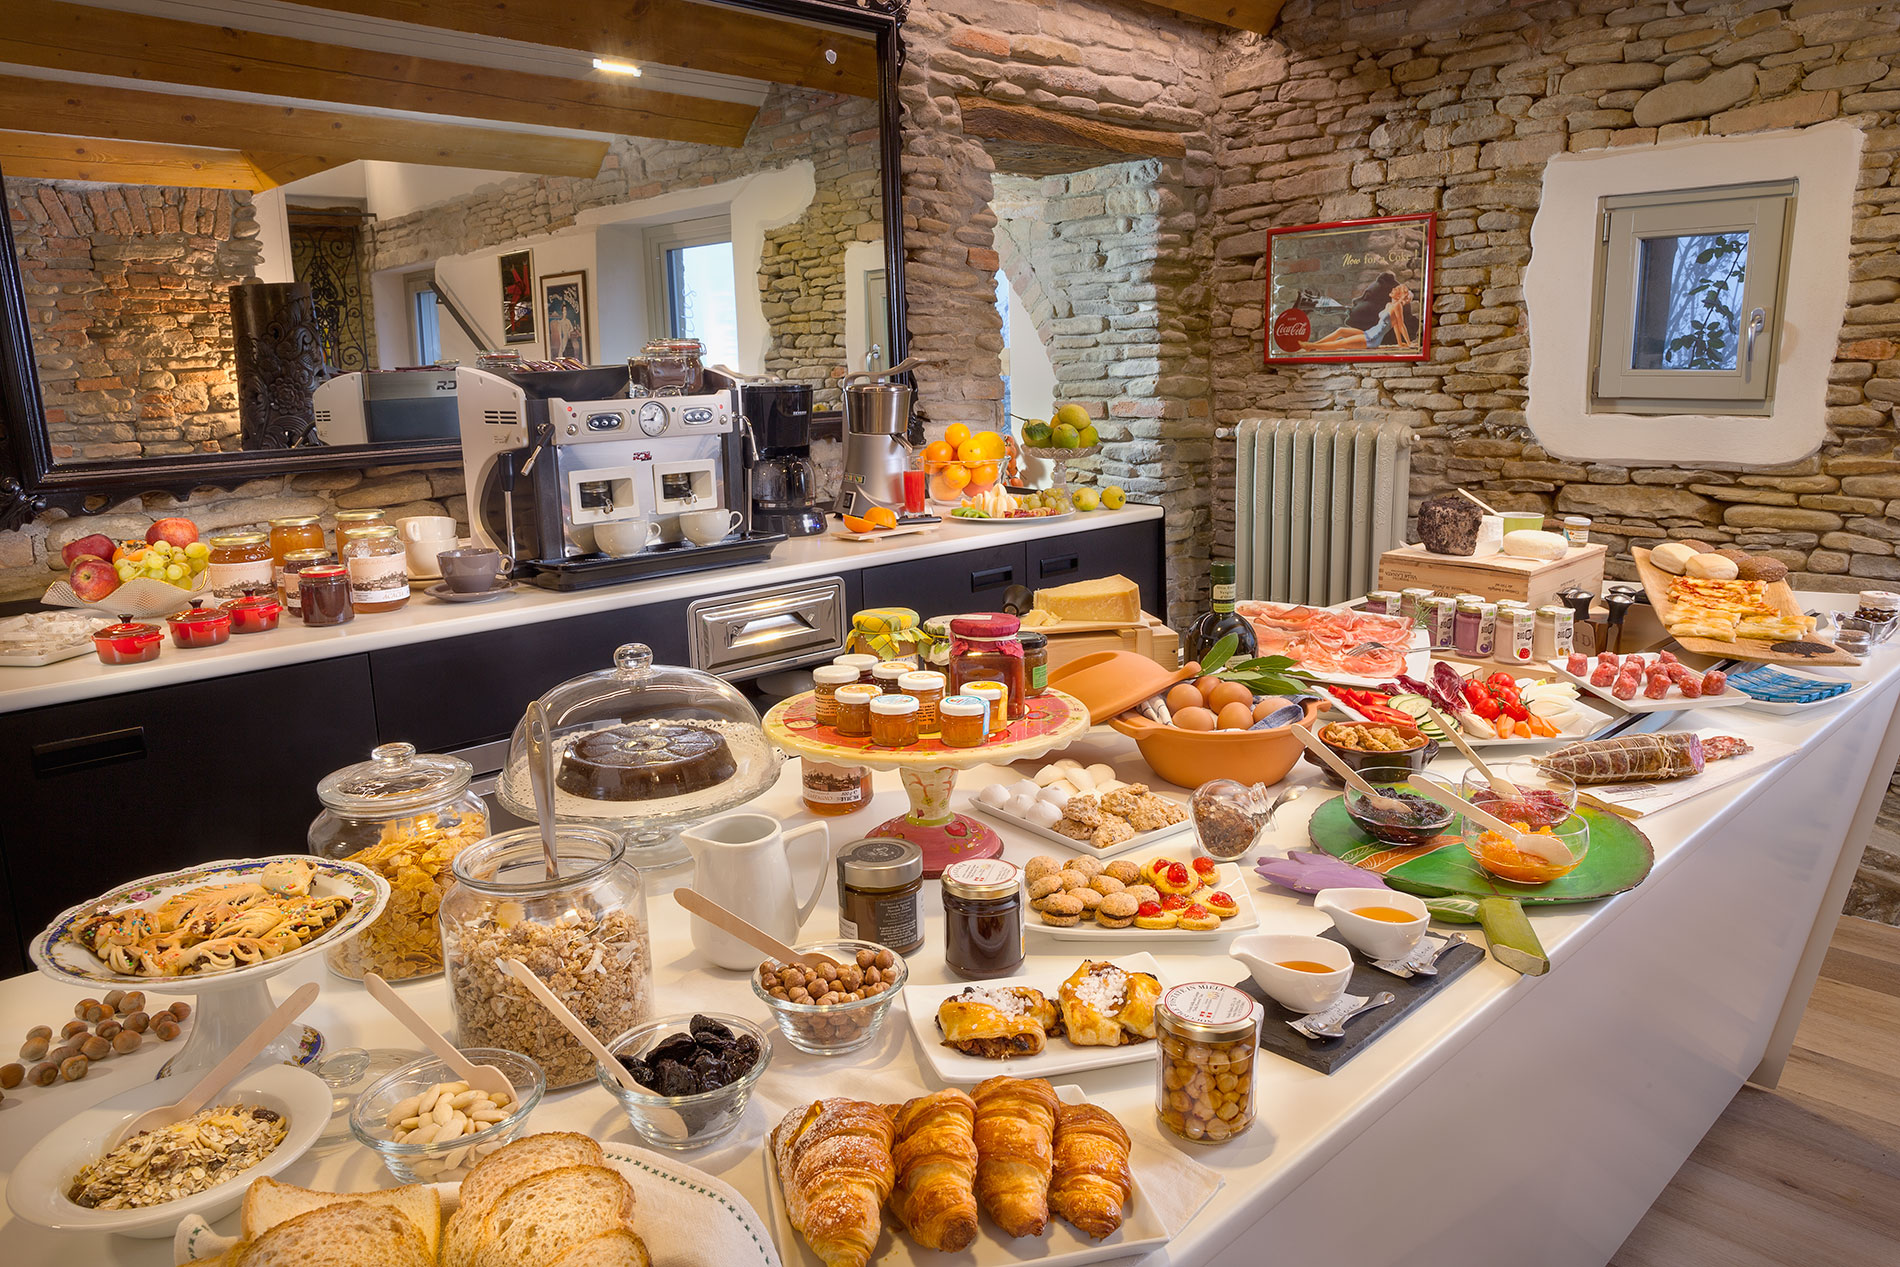 One section of the breakfast buffet that greets visitors in the morning.